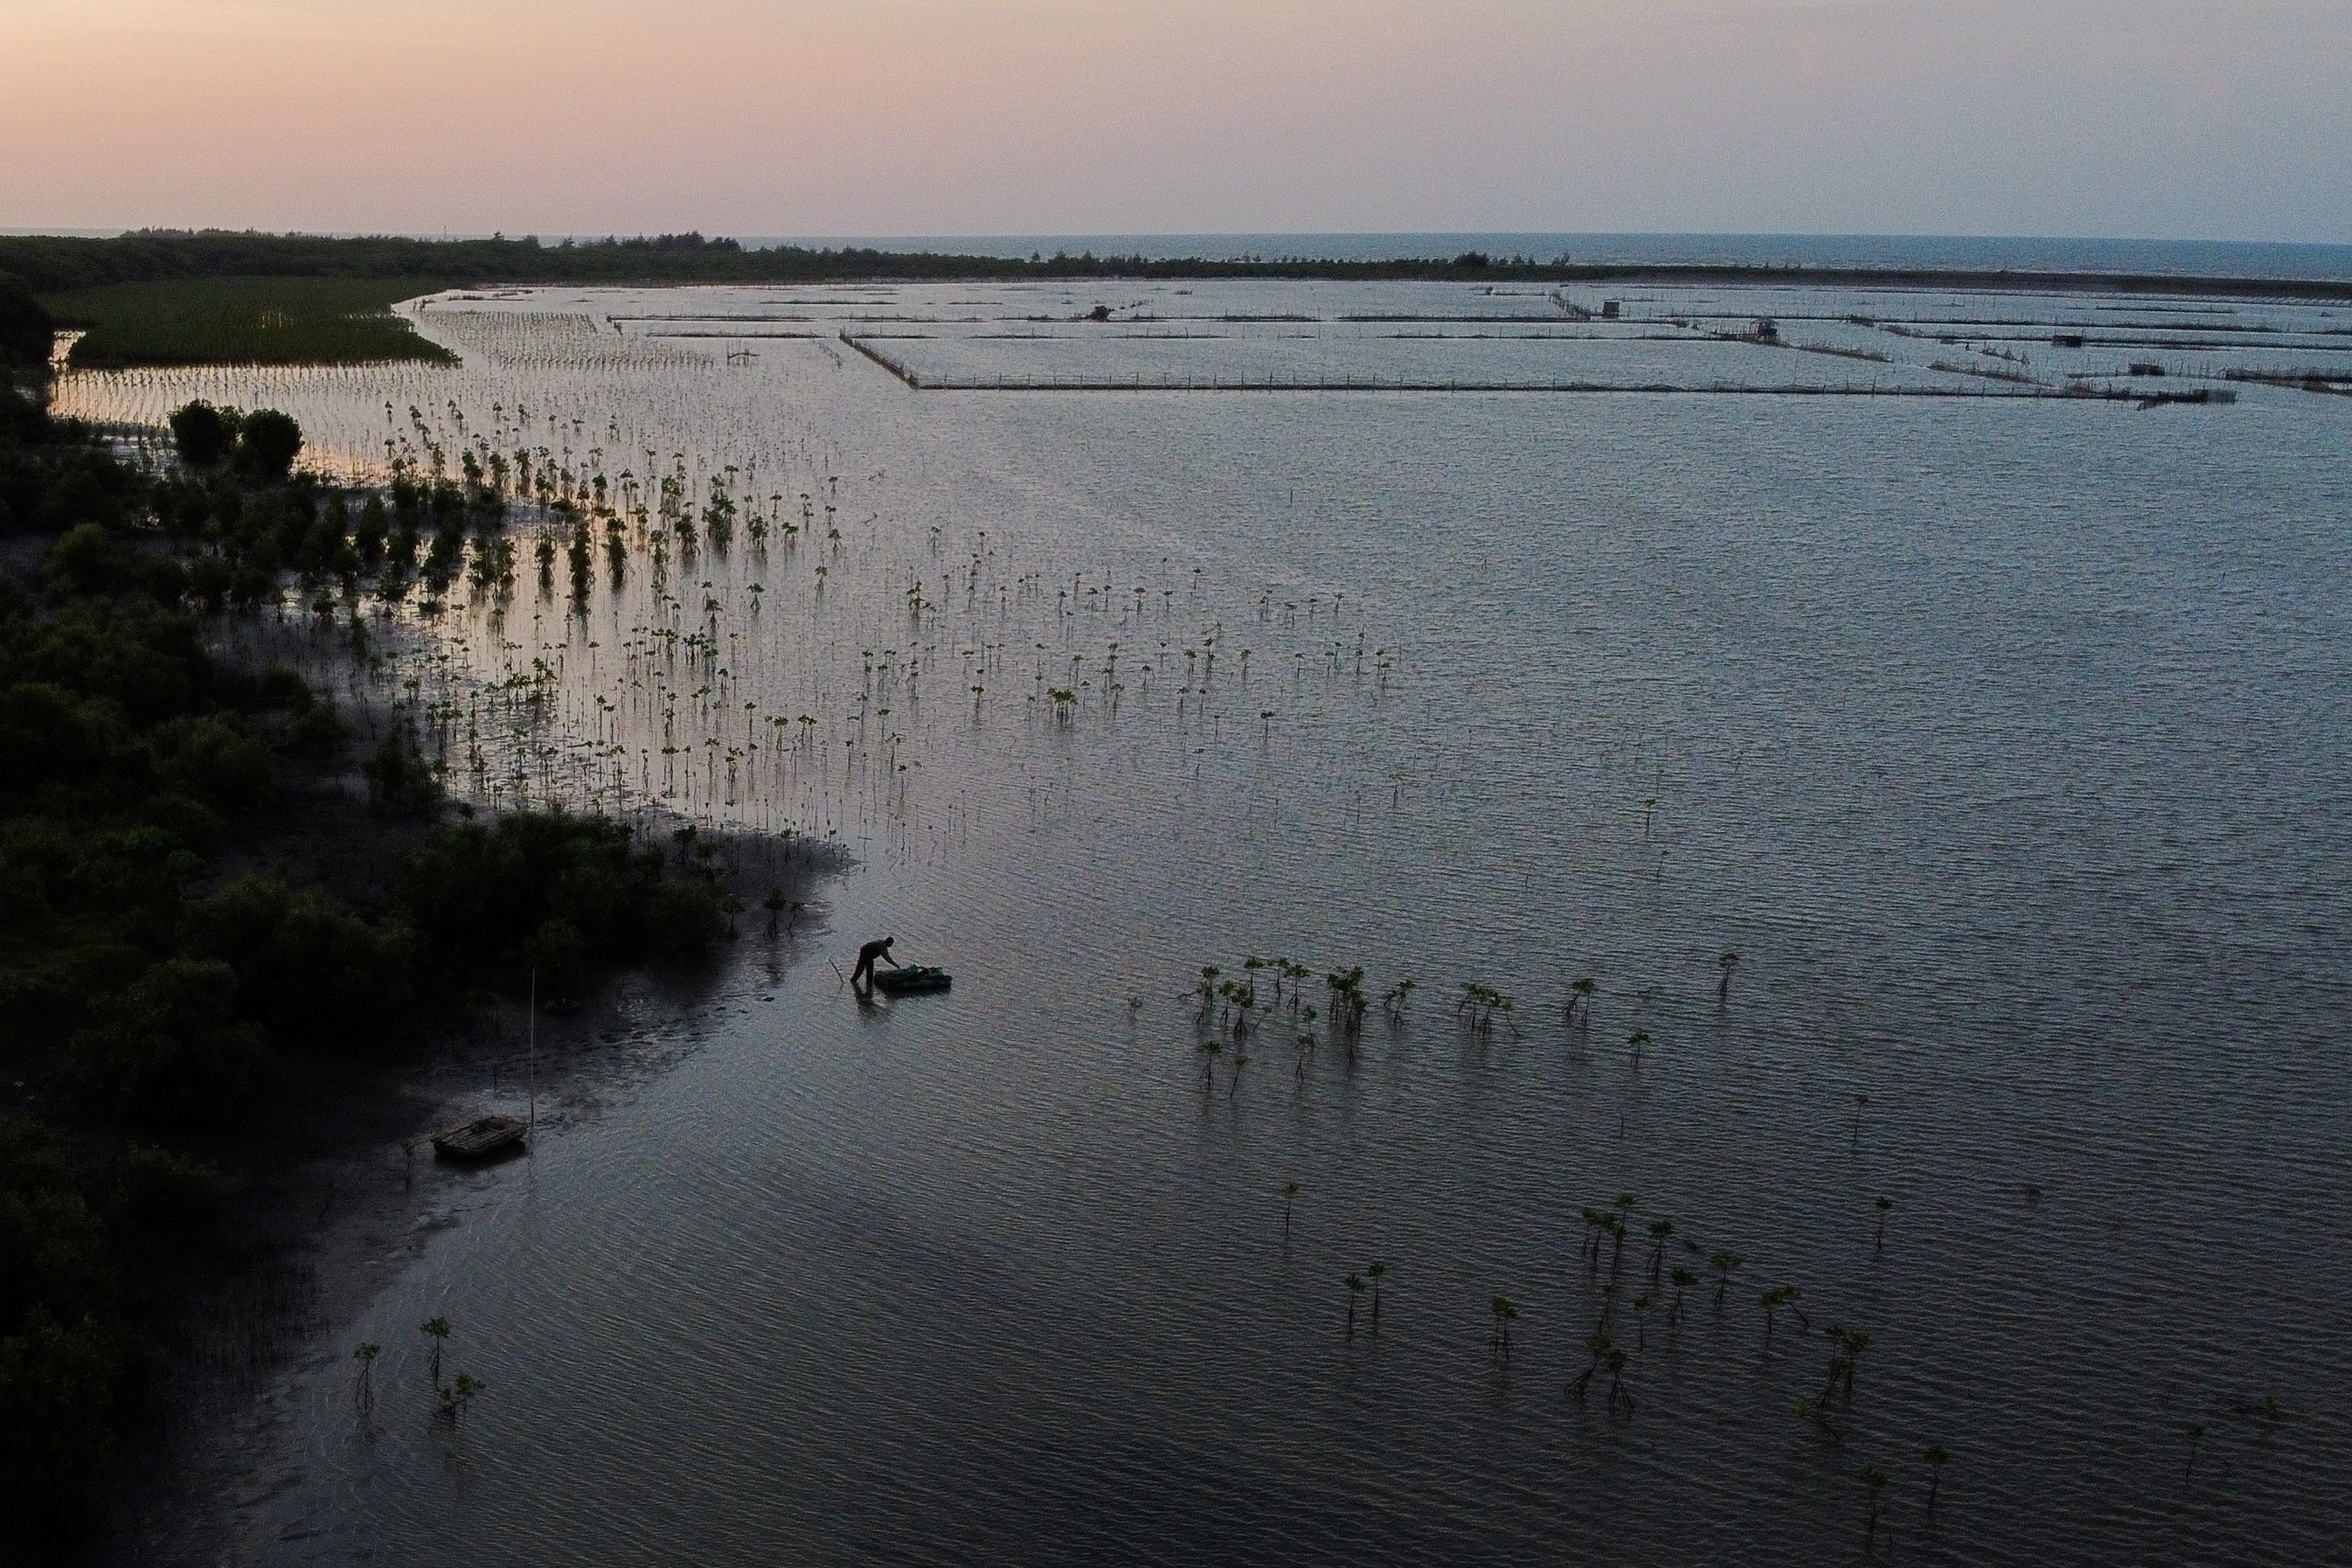 A local pond farmer is seen among the newly planted mangrove trees at Tiris beach during sunset in Pabeanilir village, Indramayu regency, West Java province, Indonesia, March 11, 2021. Picture taken with a drone, March 11, 2021. REUTERS/Willy Kurniawan - RC2DPM924HPI